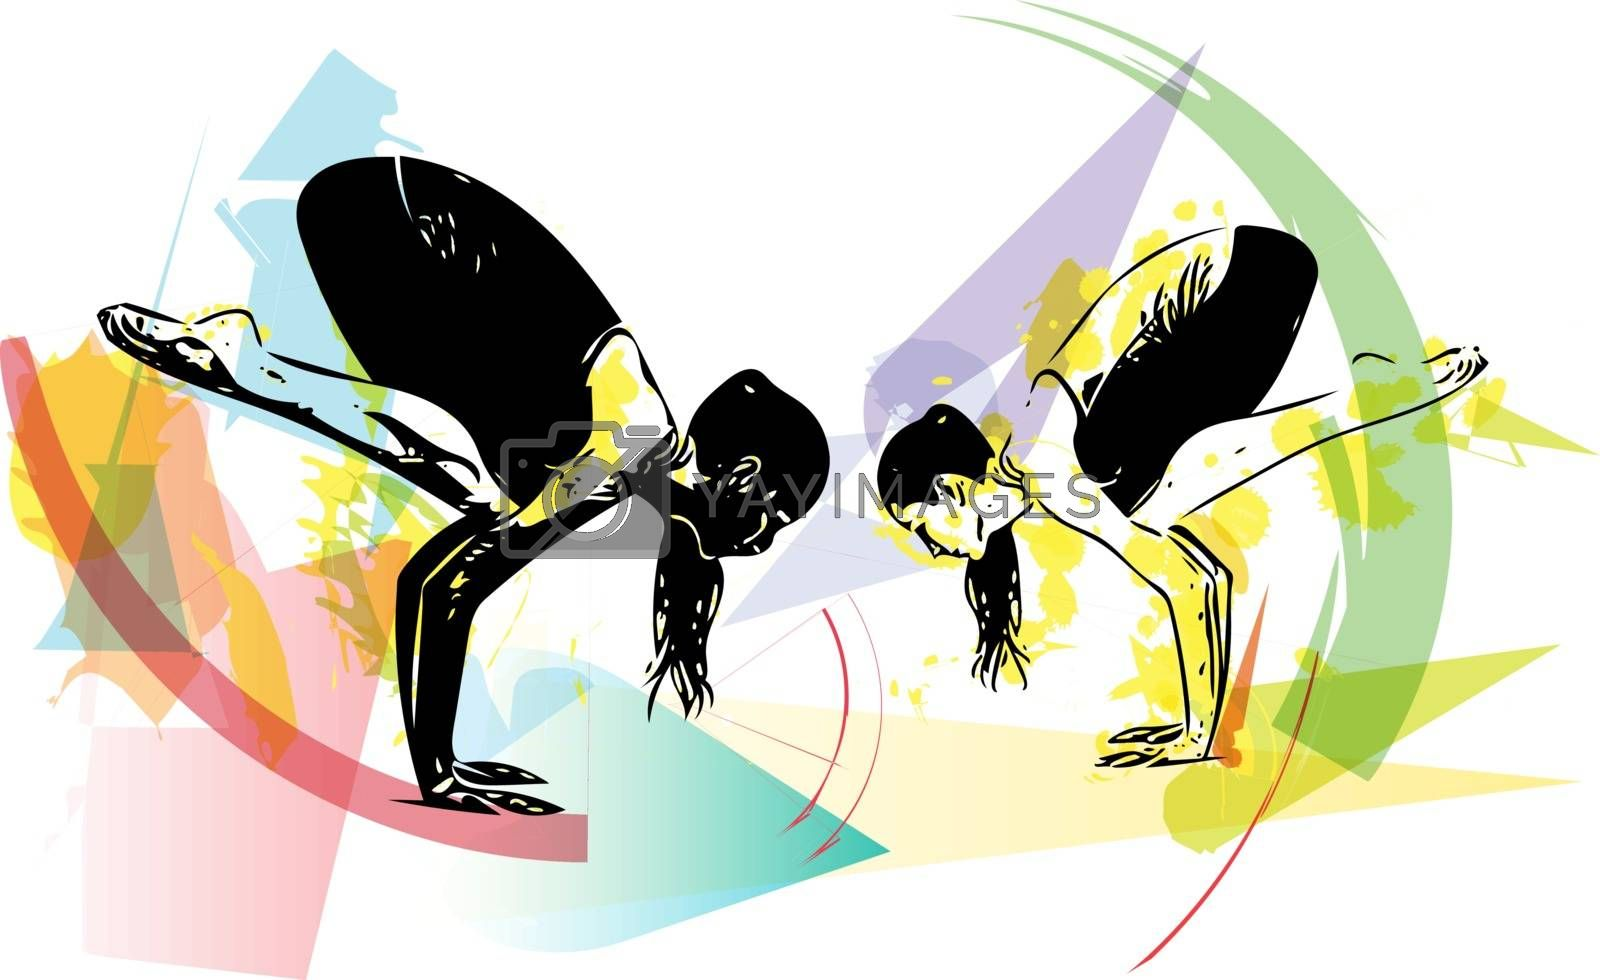 Yoga sketch women illustration with abstract colorful background